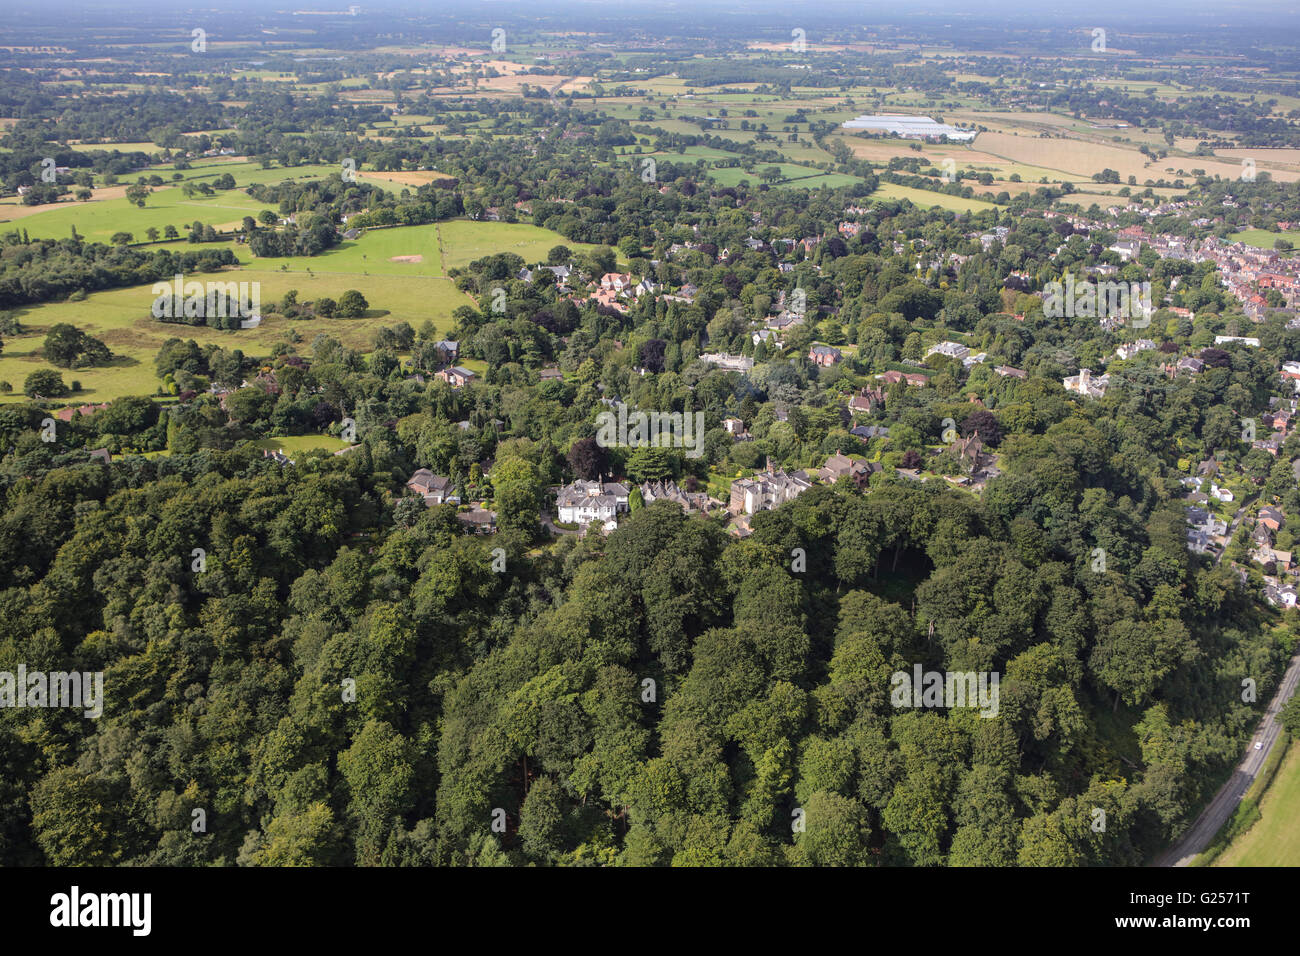 An aerial view of the Cheshire village of Alderley Edge - Stock Image